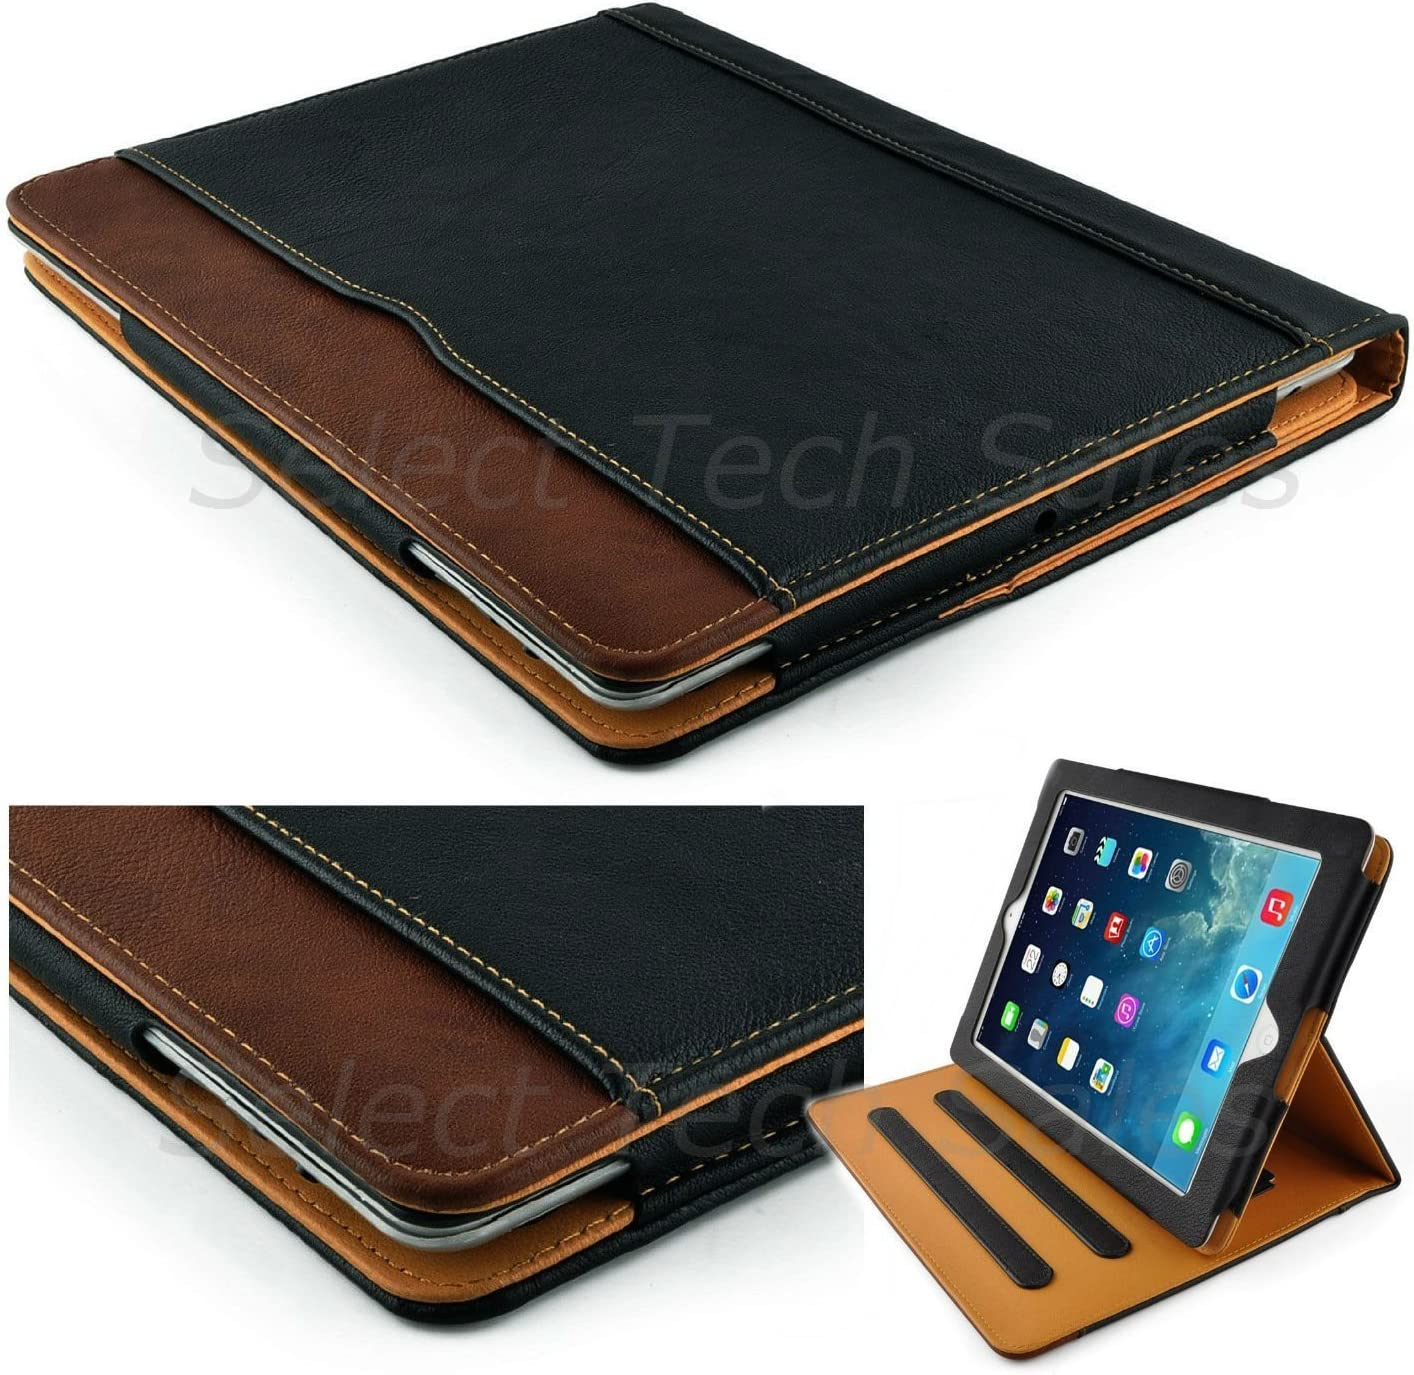 New S-Tech Black and Tan Apple iPad Air 9.7 Model Soft Leather Wallet Smart Cover with Sleep/Wake Feature Flip Case